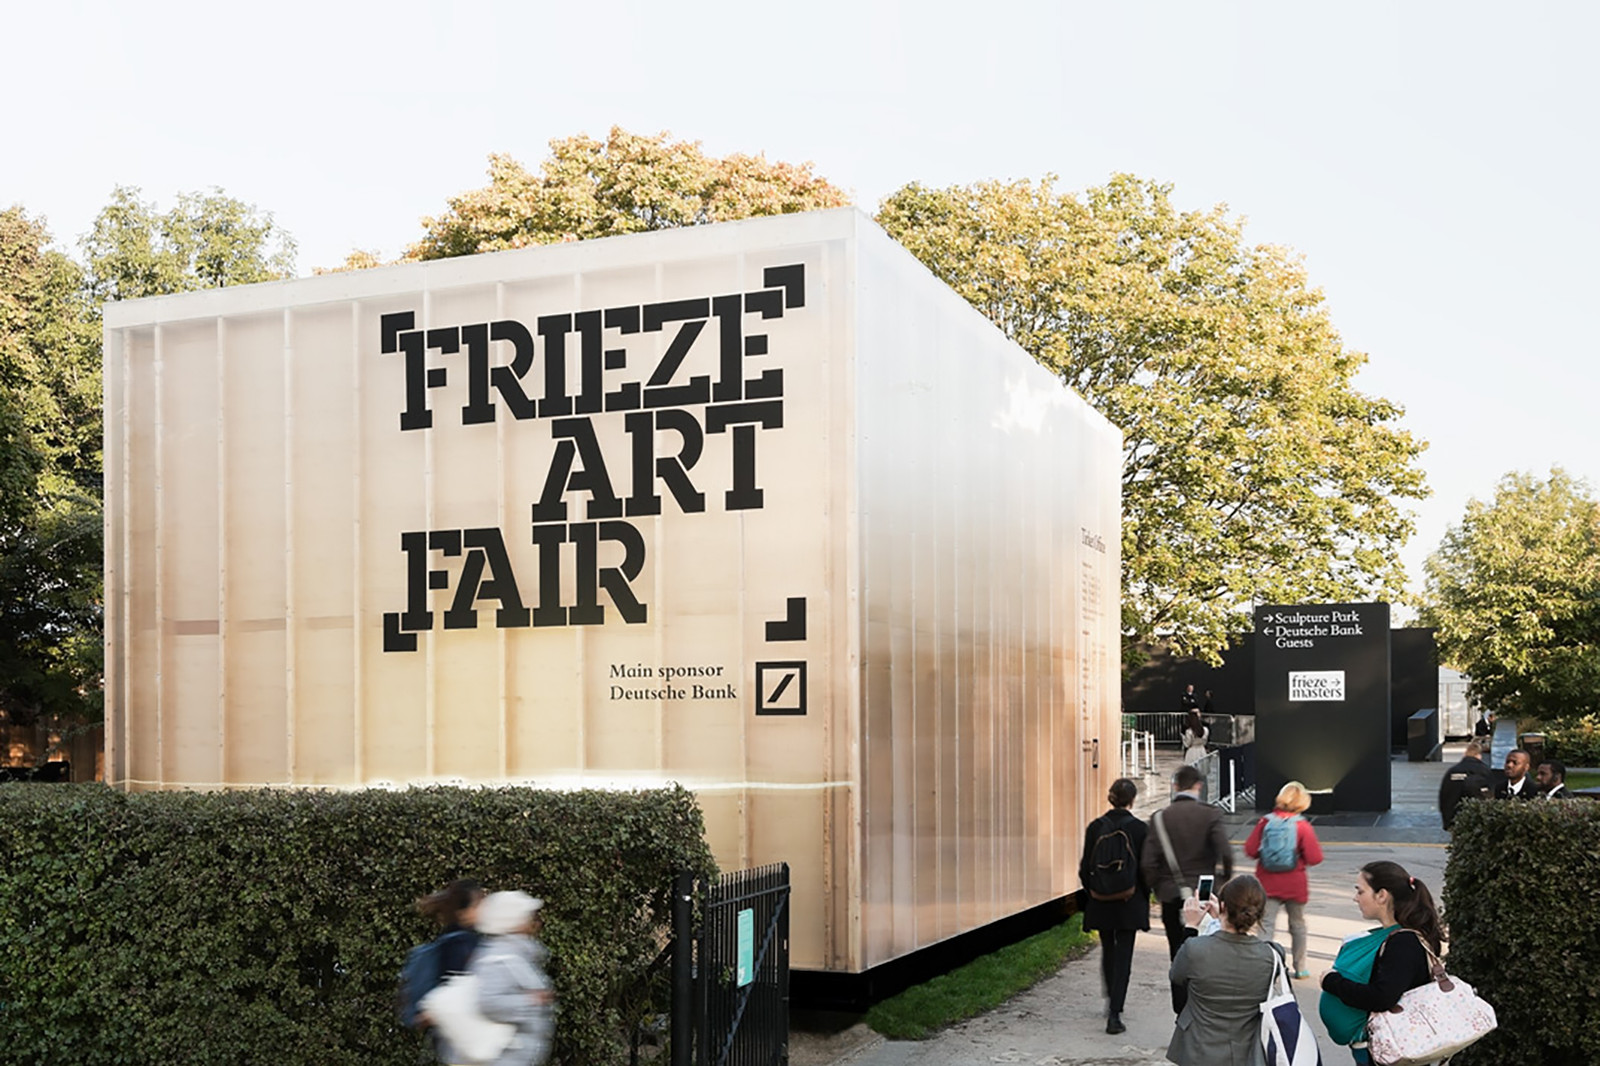 Frieze London 2016 art fair guide